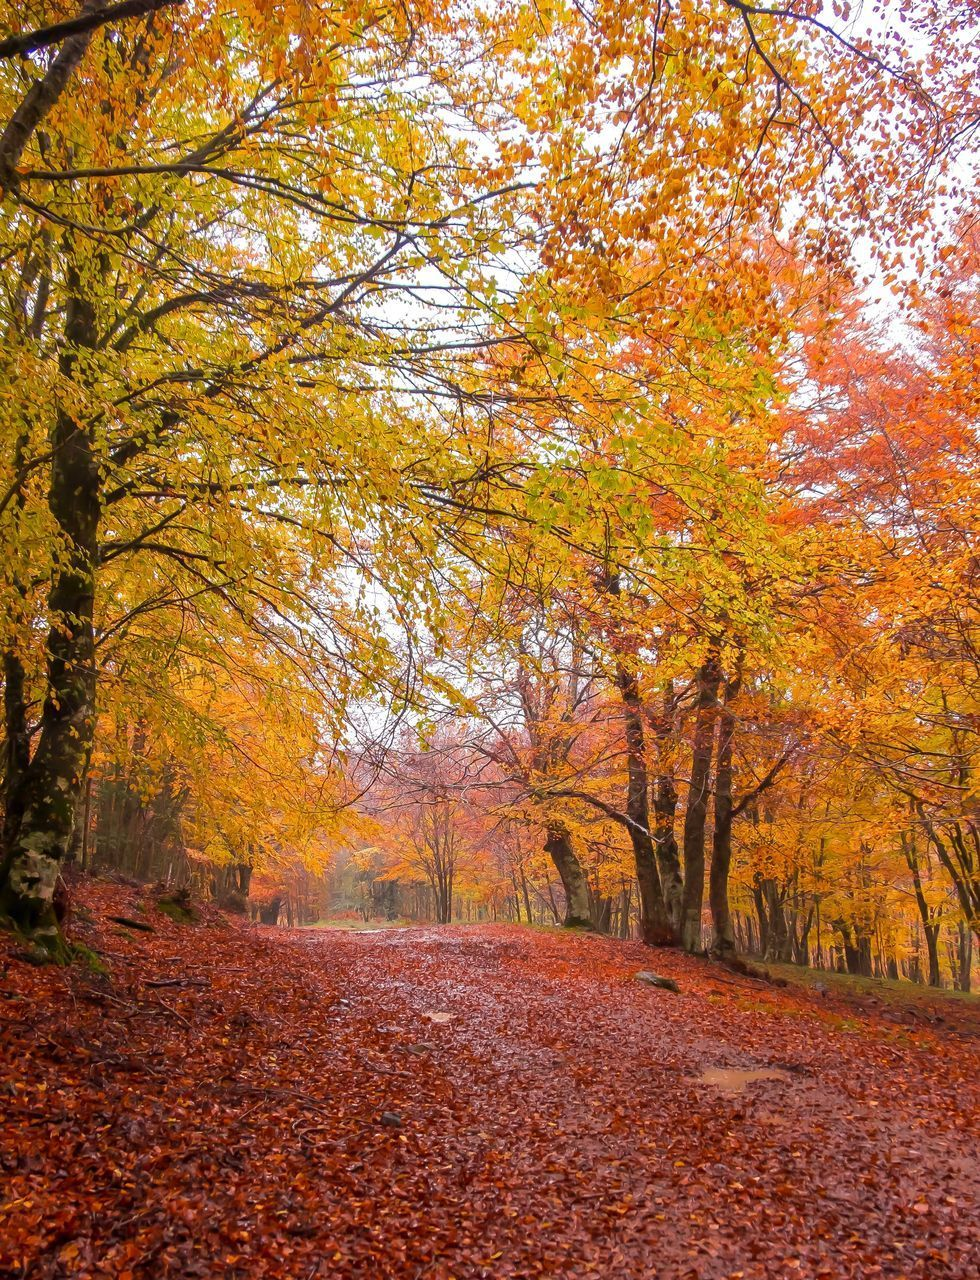 VIEW OF AUTUMNAL TREES BY ROAD